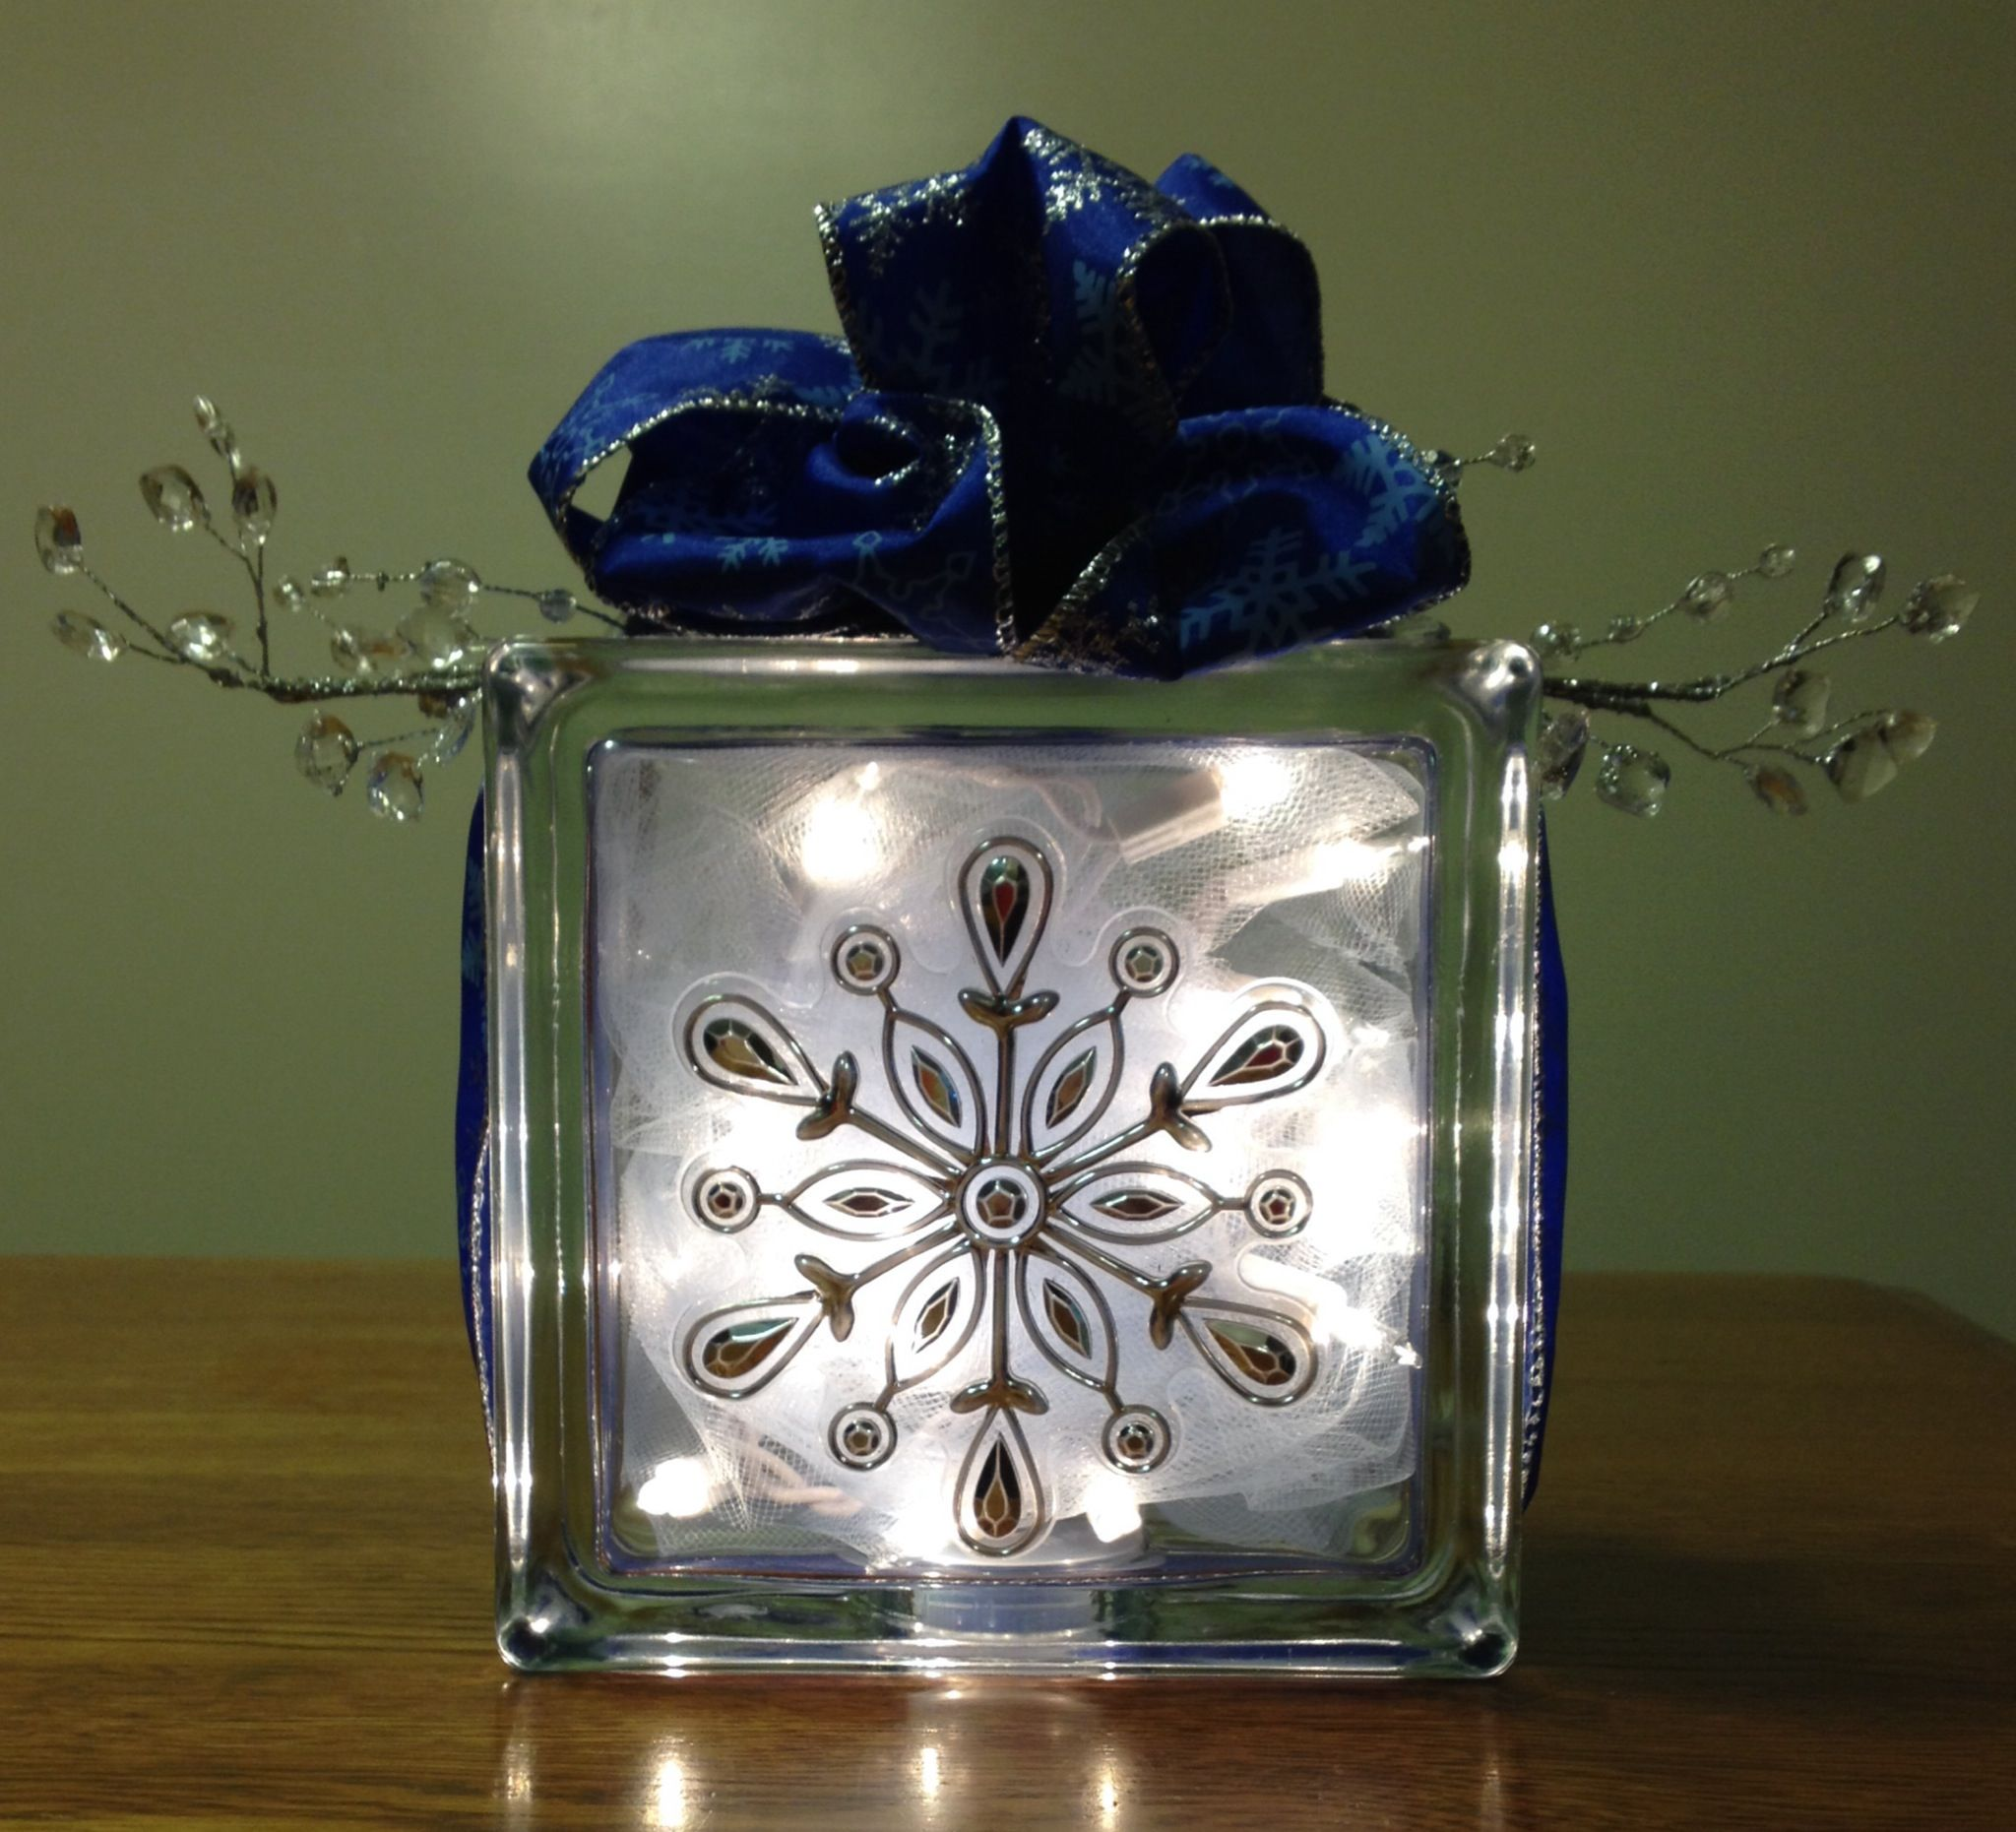 Snowflake glass block crafts pinterest for Glass block for crafts